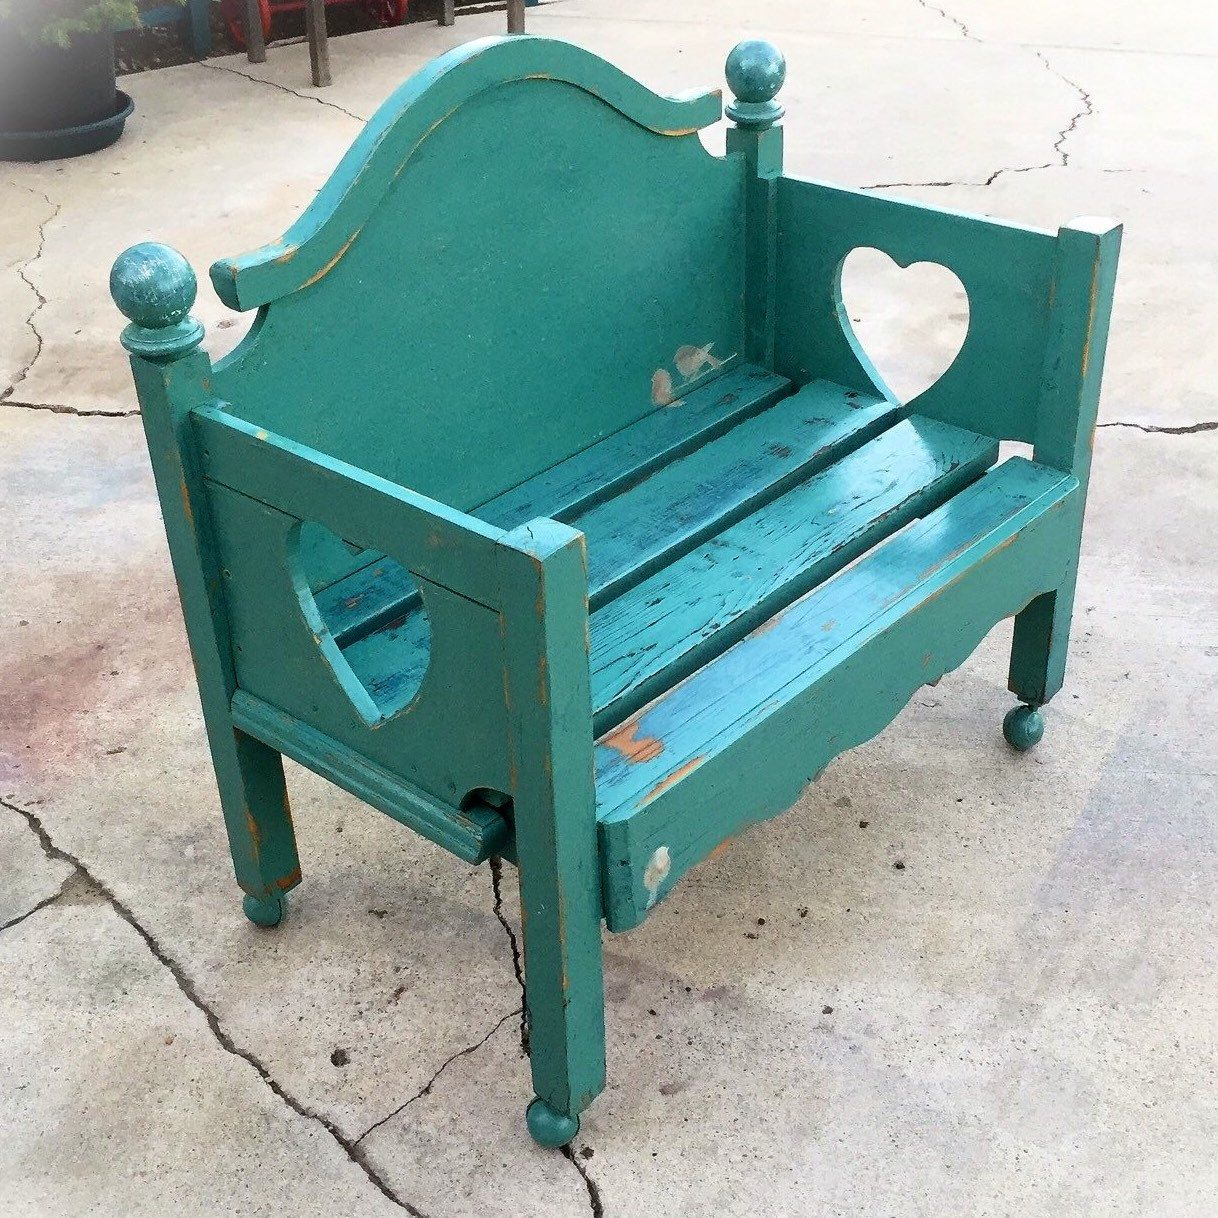 Shabby Chic Farmhouse Bench With Secret Cubby Painted Benches Farmhouse Furniture Shabby Chic Furniture